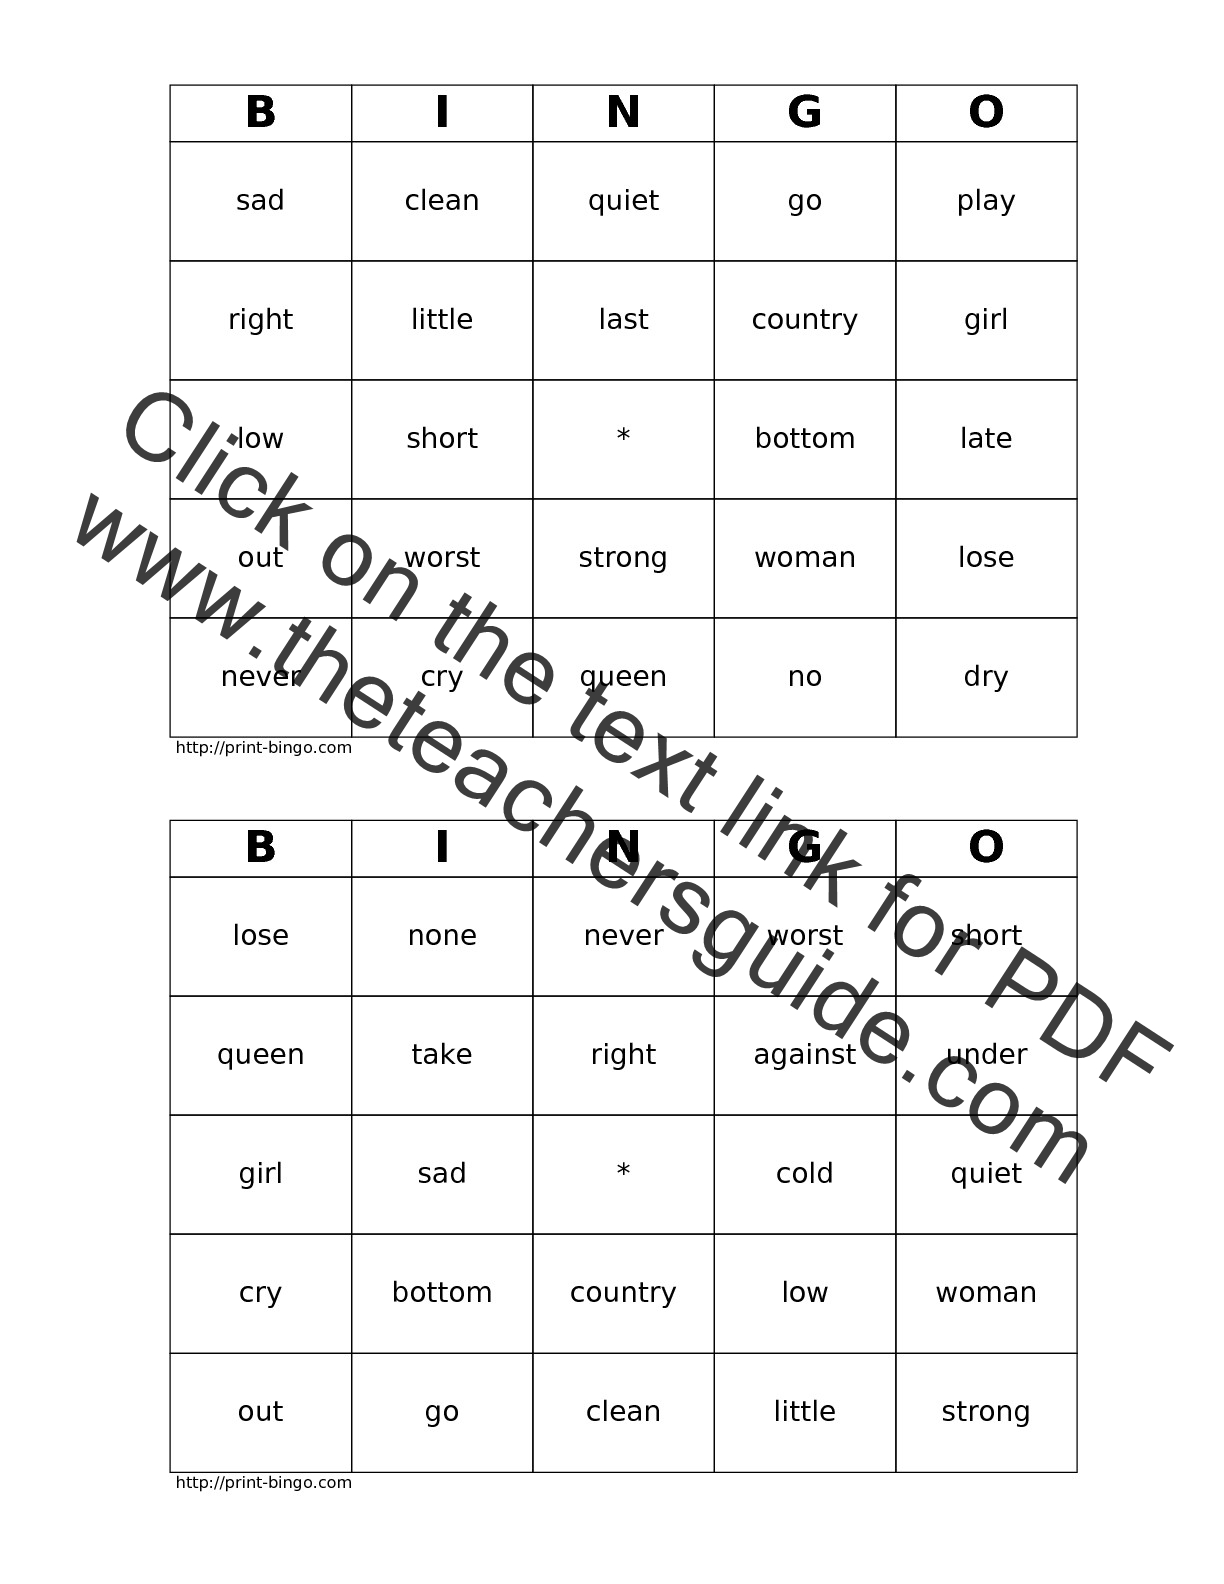 synonyms antonyms High quality printable synonyms and antonyms worksheets great for use in school or at home we hope you find them useful.